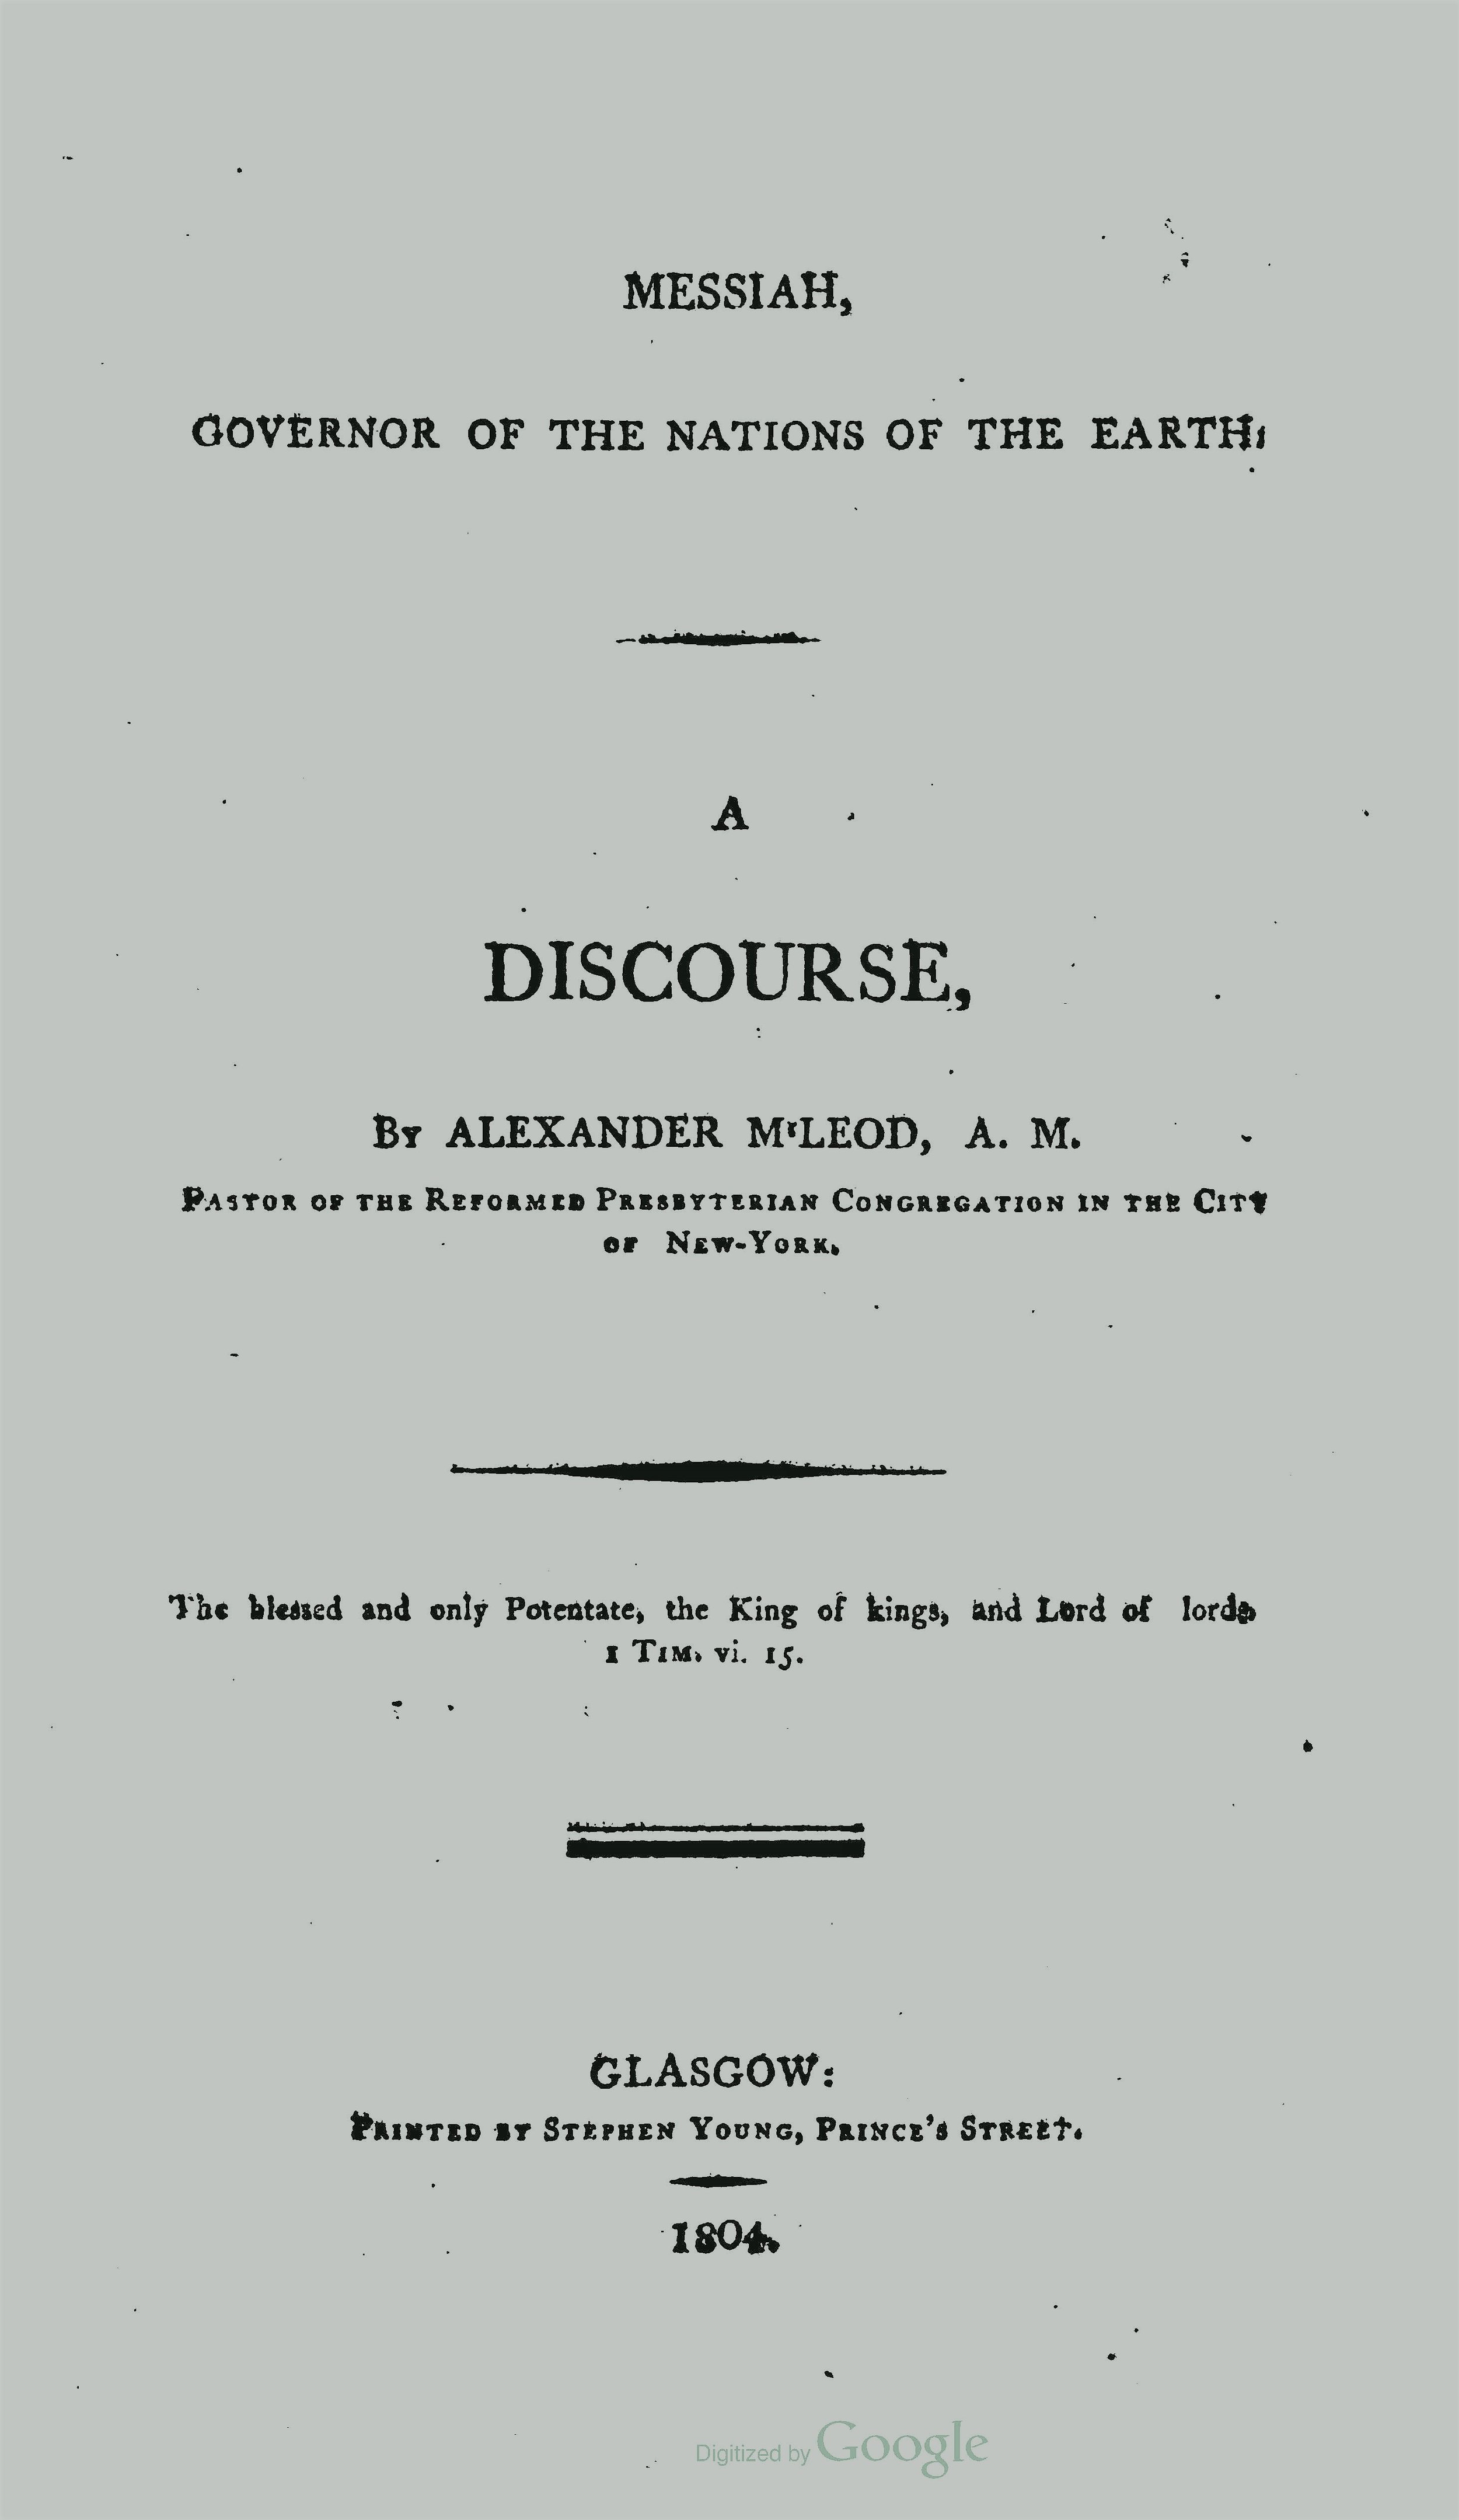 McLeod, Alexander, Messiah, Governor of the Nations of the Earth Title Page.jpg